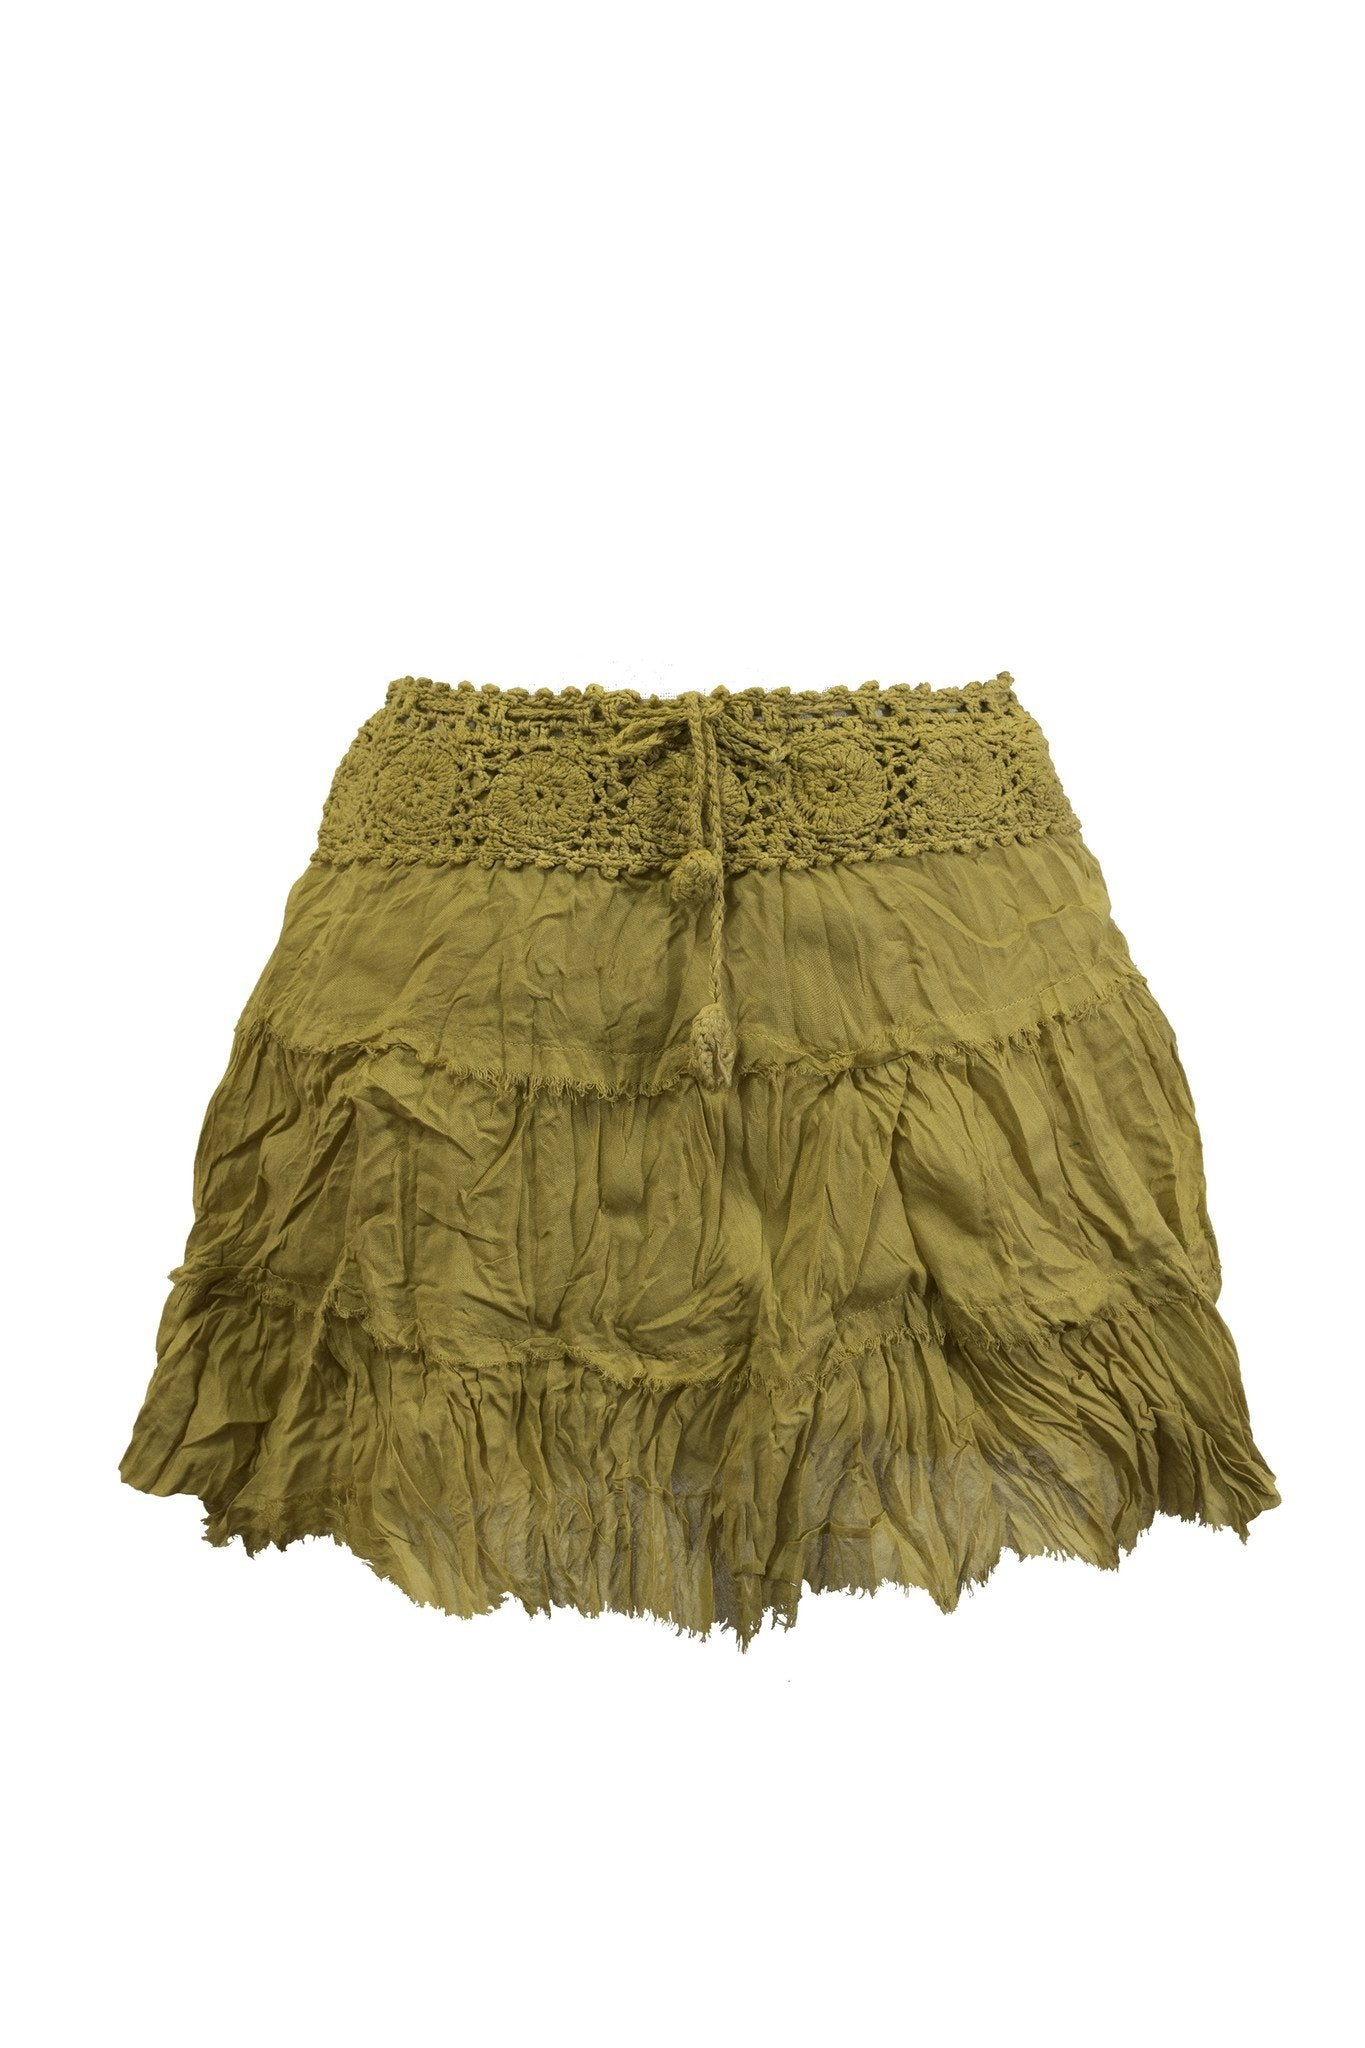 Short Skirt B Cotton with Crochet Waist - CCCollections